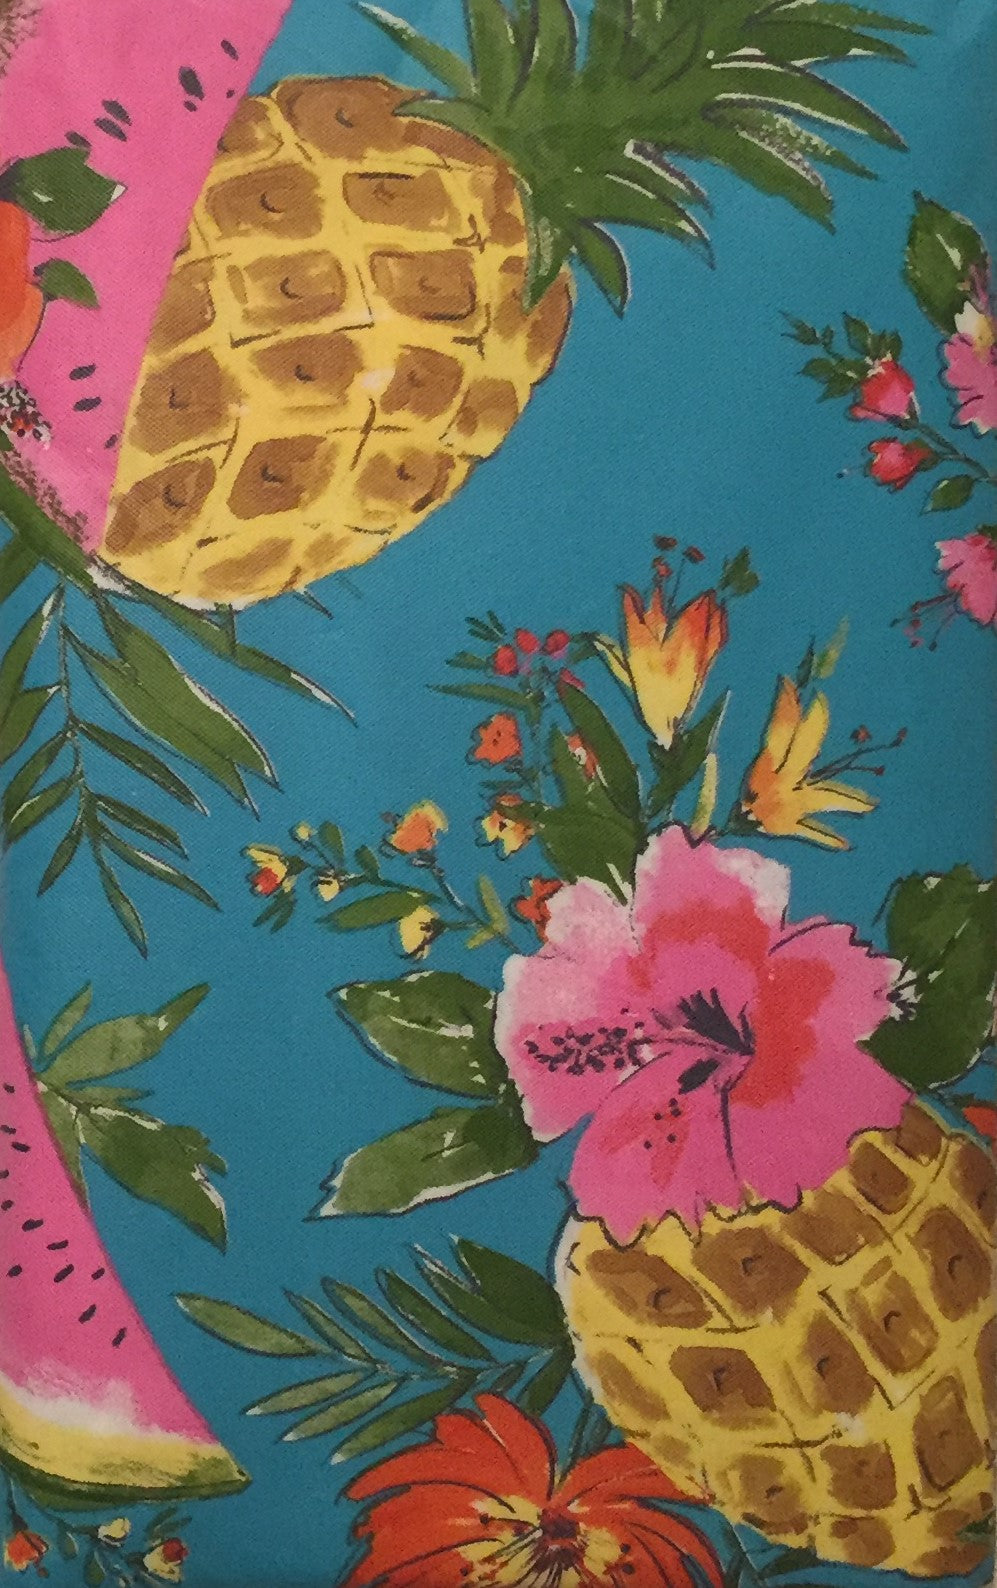 Elrene Vinyl Flannel Back Tablecloth 52 x 70 Oblong Pineapple Watermelon